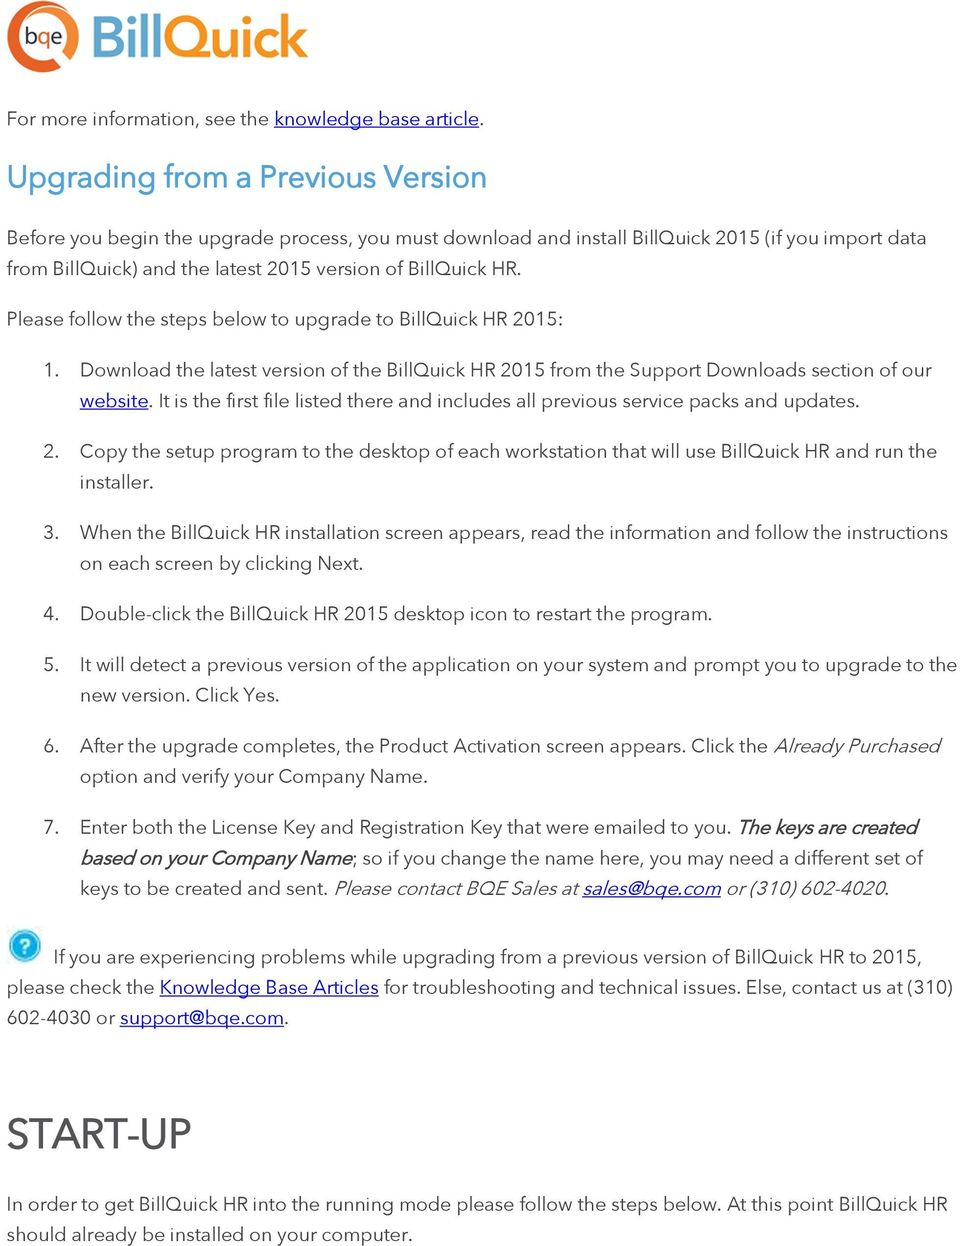 Please follow the steps below to upgrade to BillQuick HR 2015: 1. Download the latest version of the BillQuick HR 2015 from the Support Downloads section of our website.